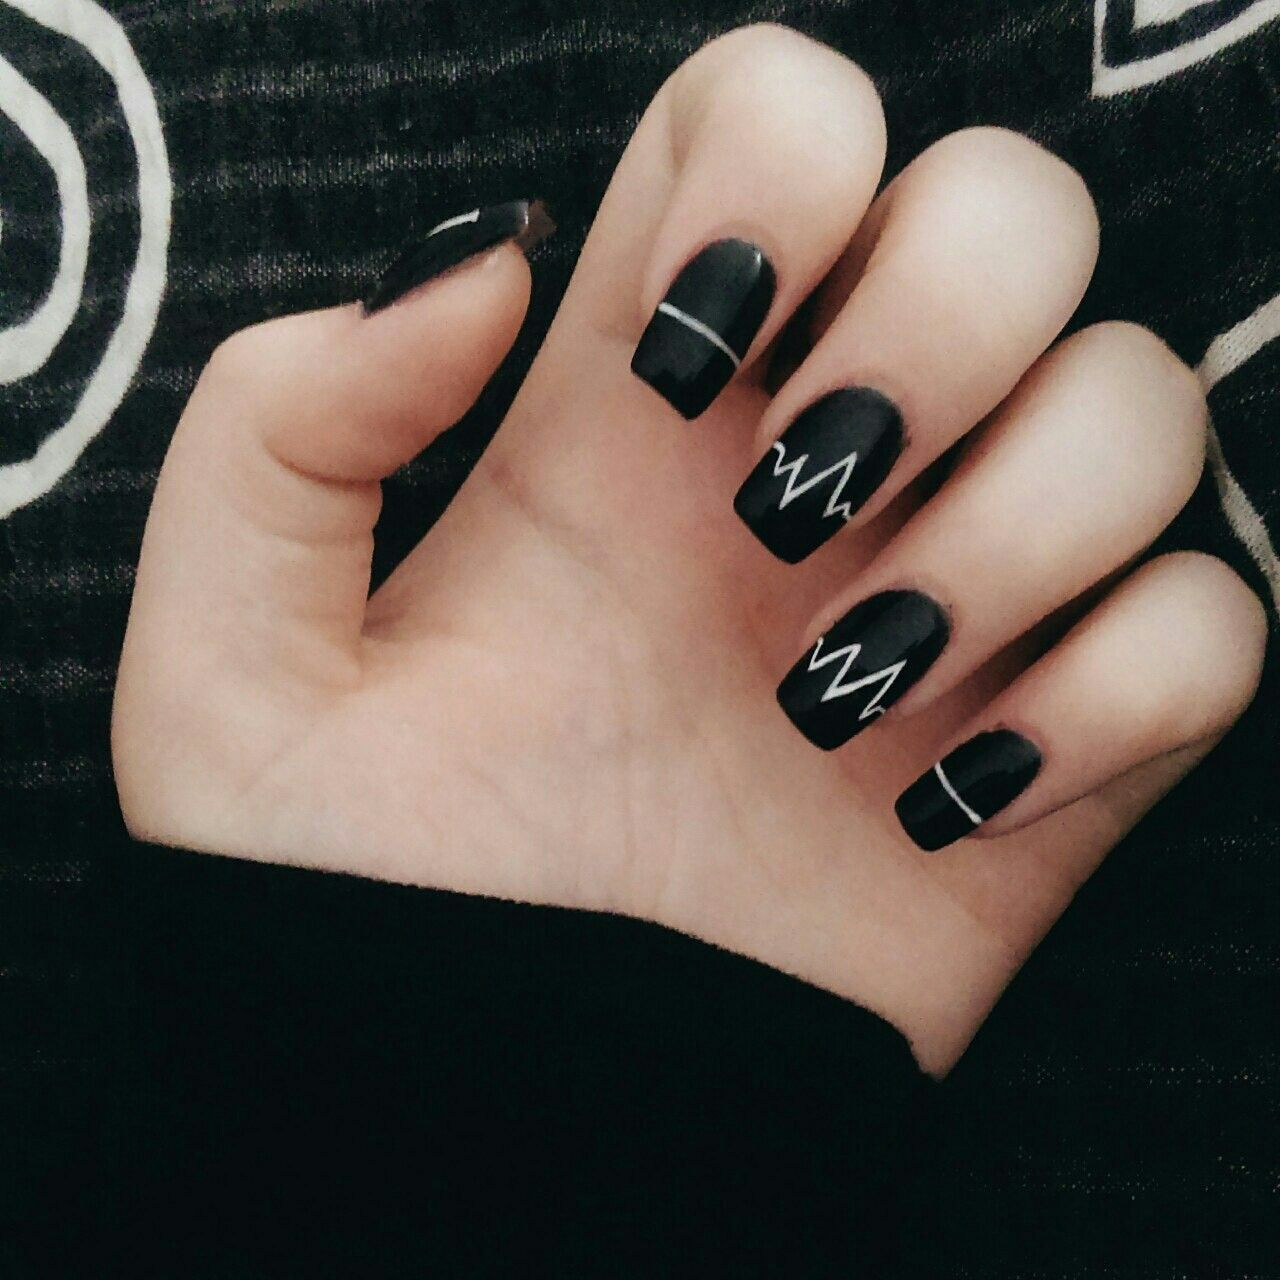 Pin by Ксения on Nails | Pinterest | Nails games, Almond nails and ...